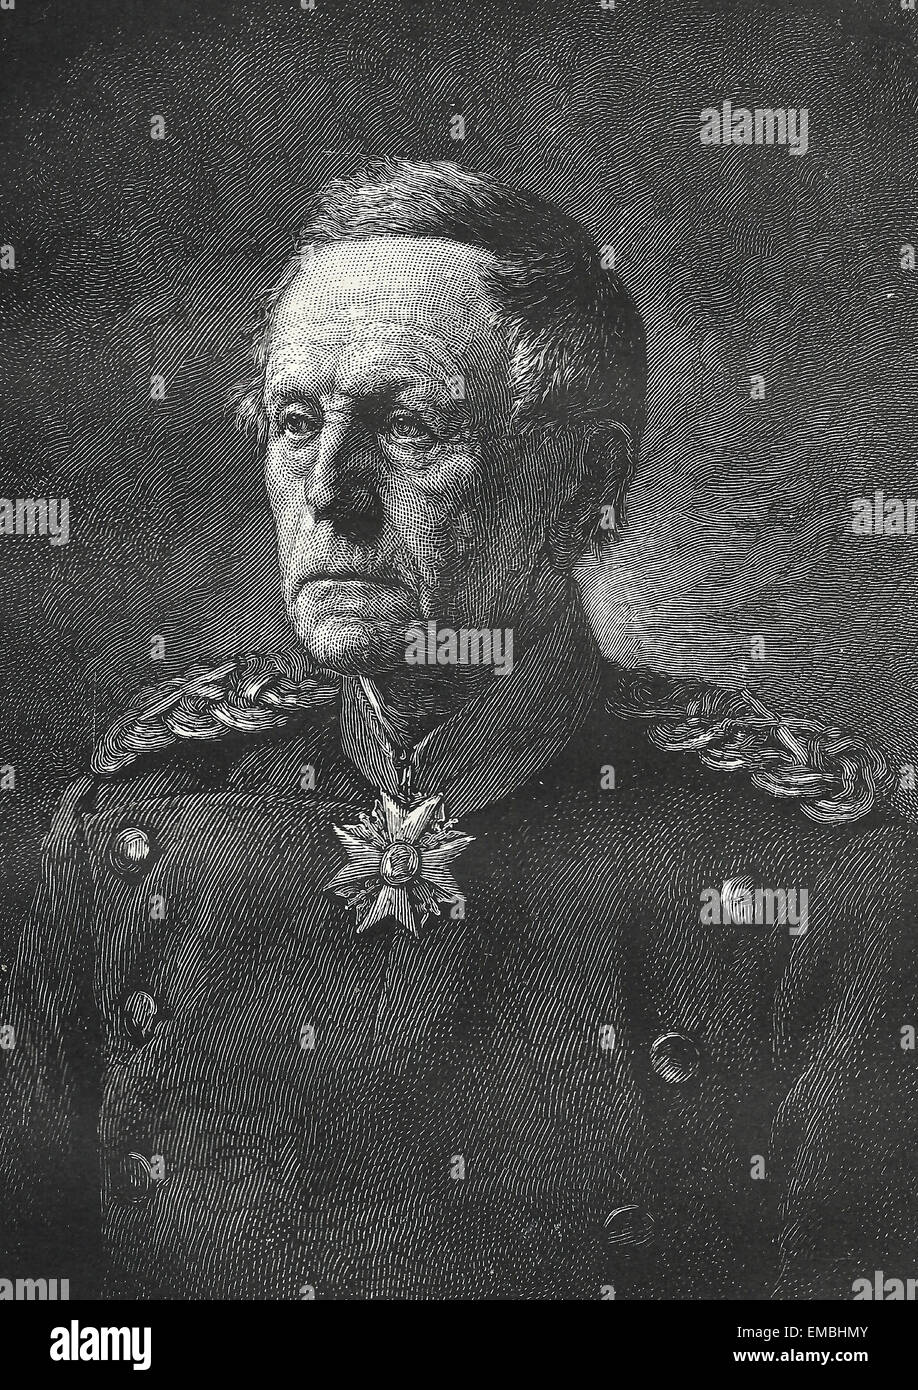 Field Marshall Helmuth von Moltke the Elder, circa 1880 - Stock Image